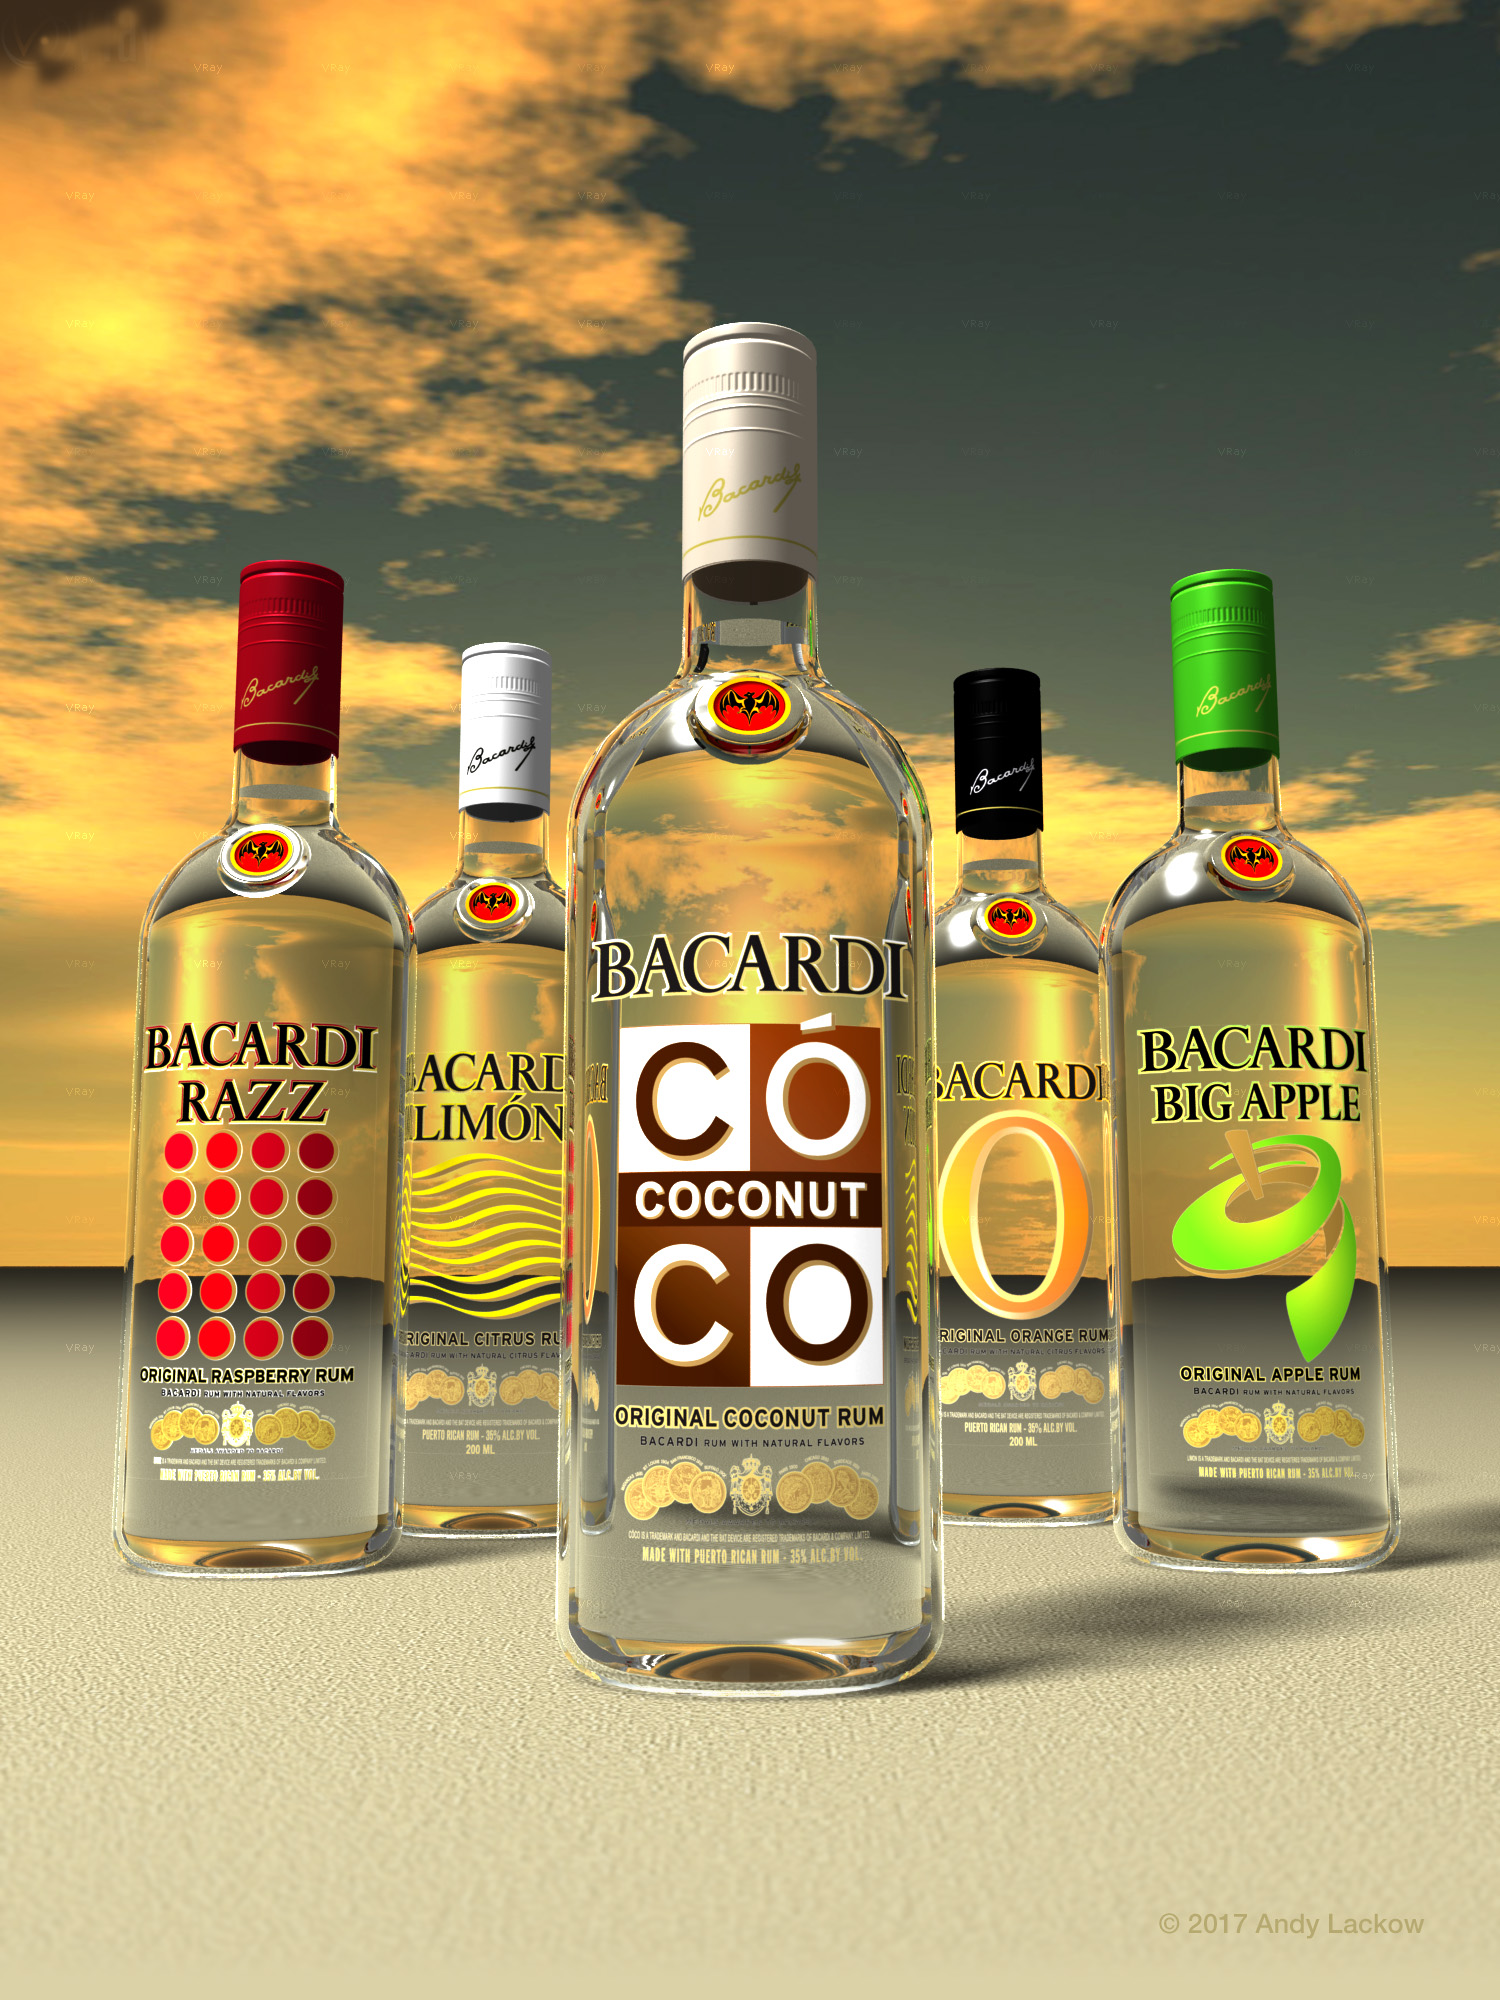 Bacardi Ad Illustration